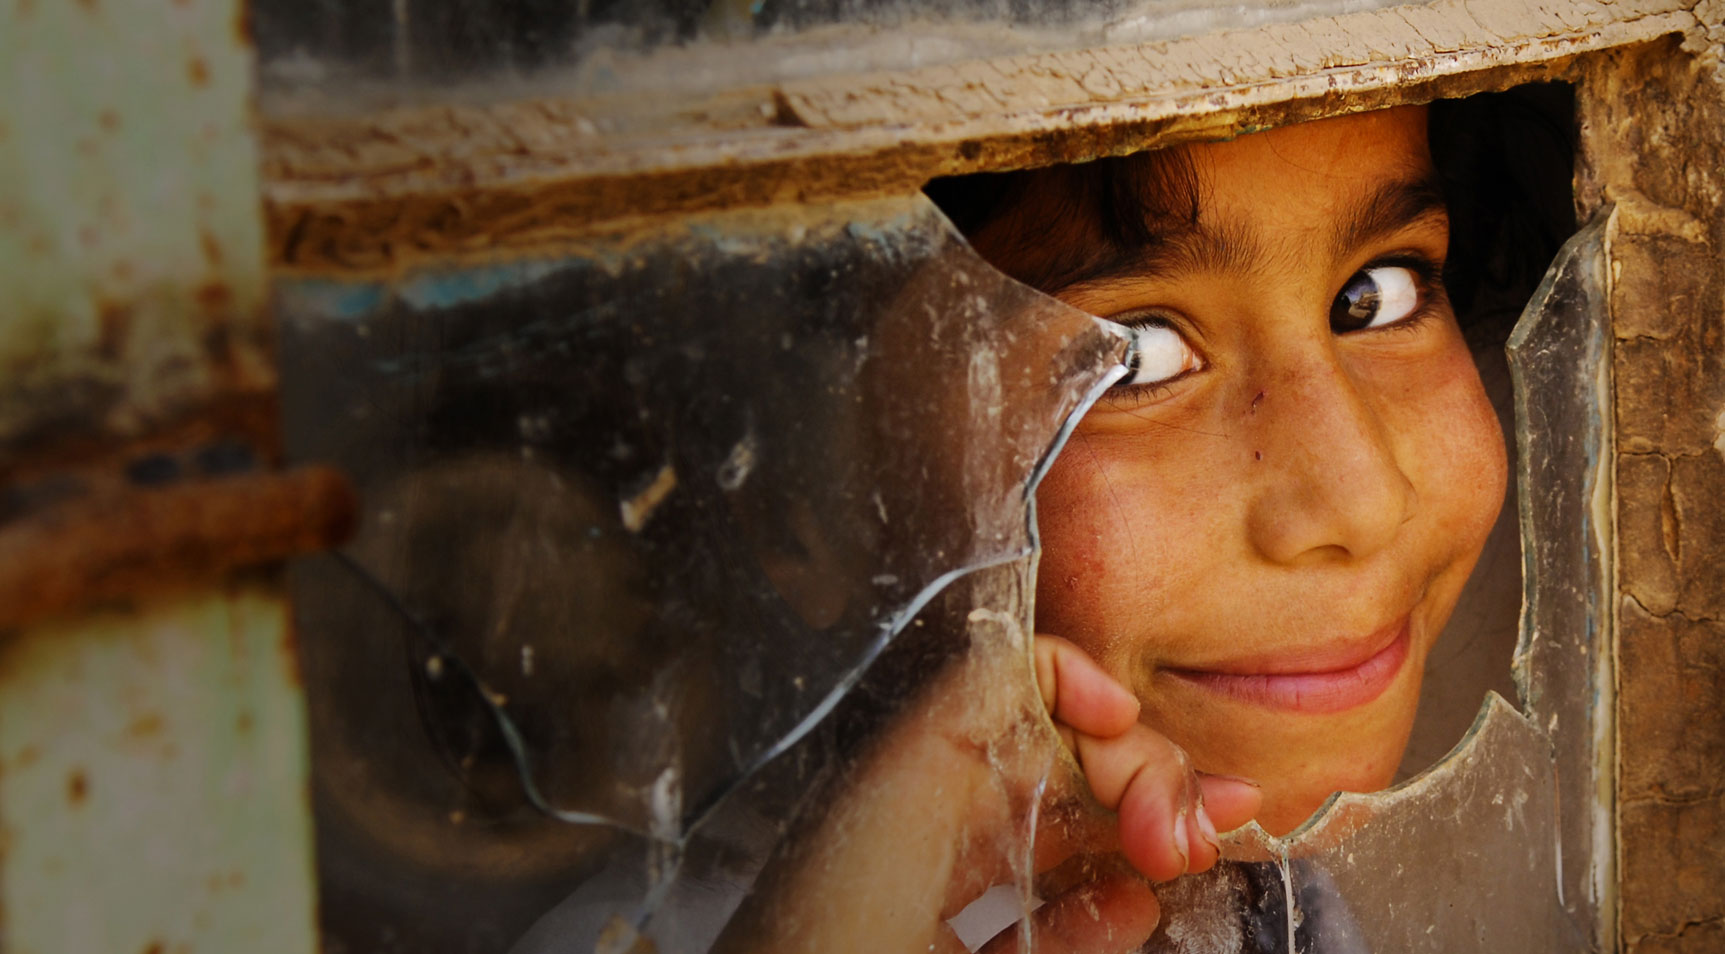 Iraqi girl - photo by  U.S. Army